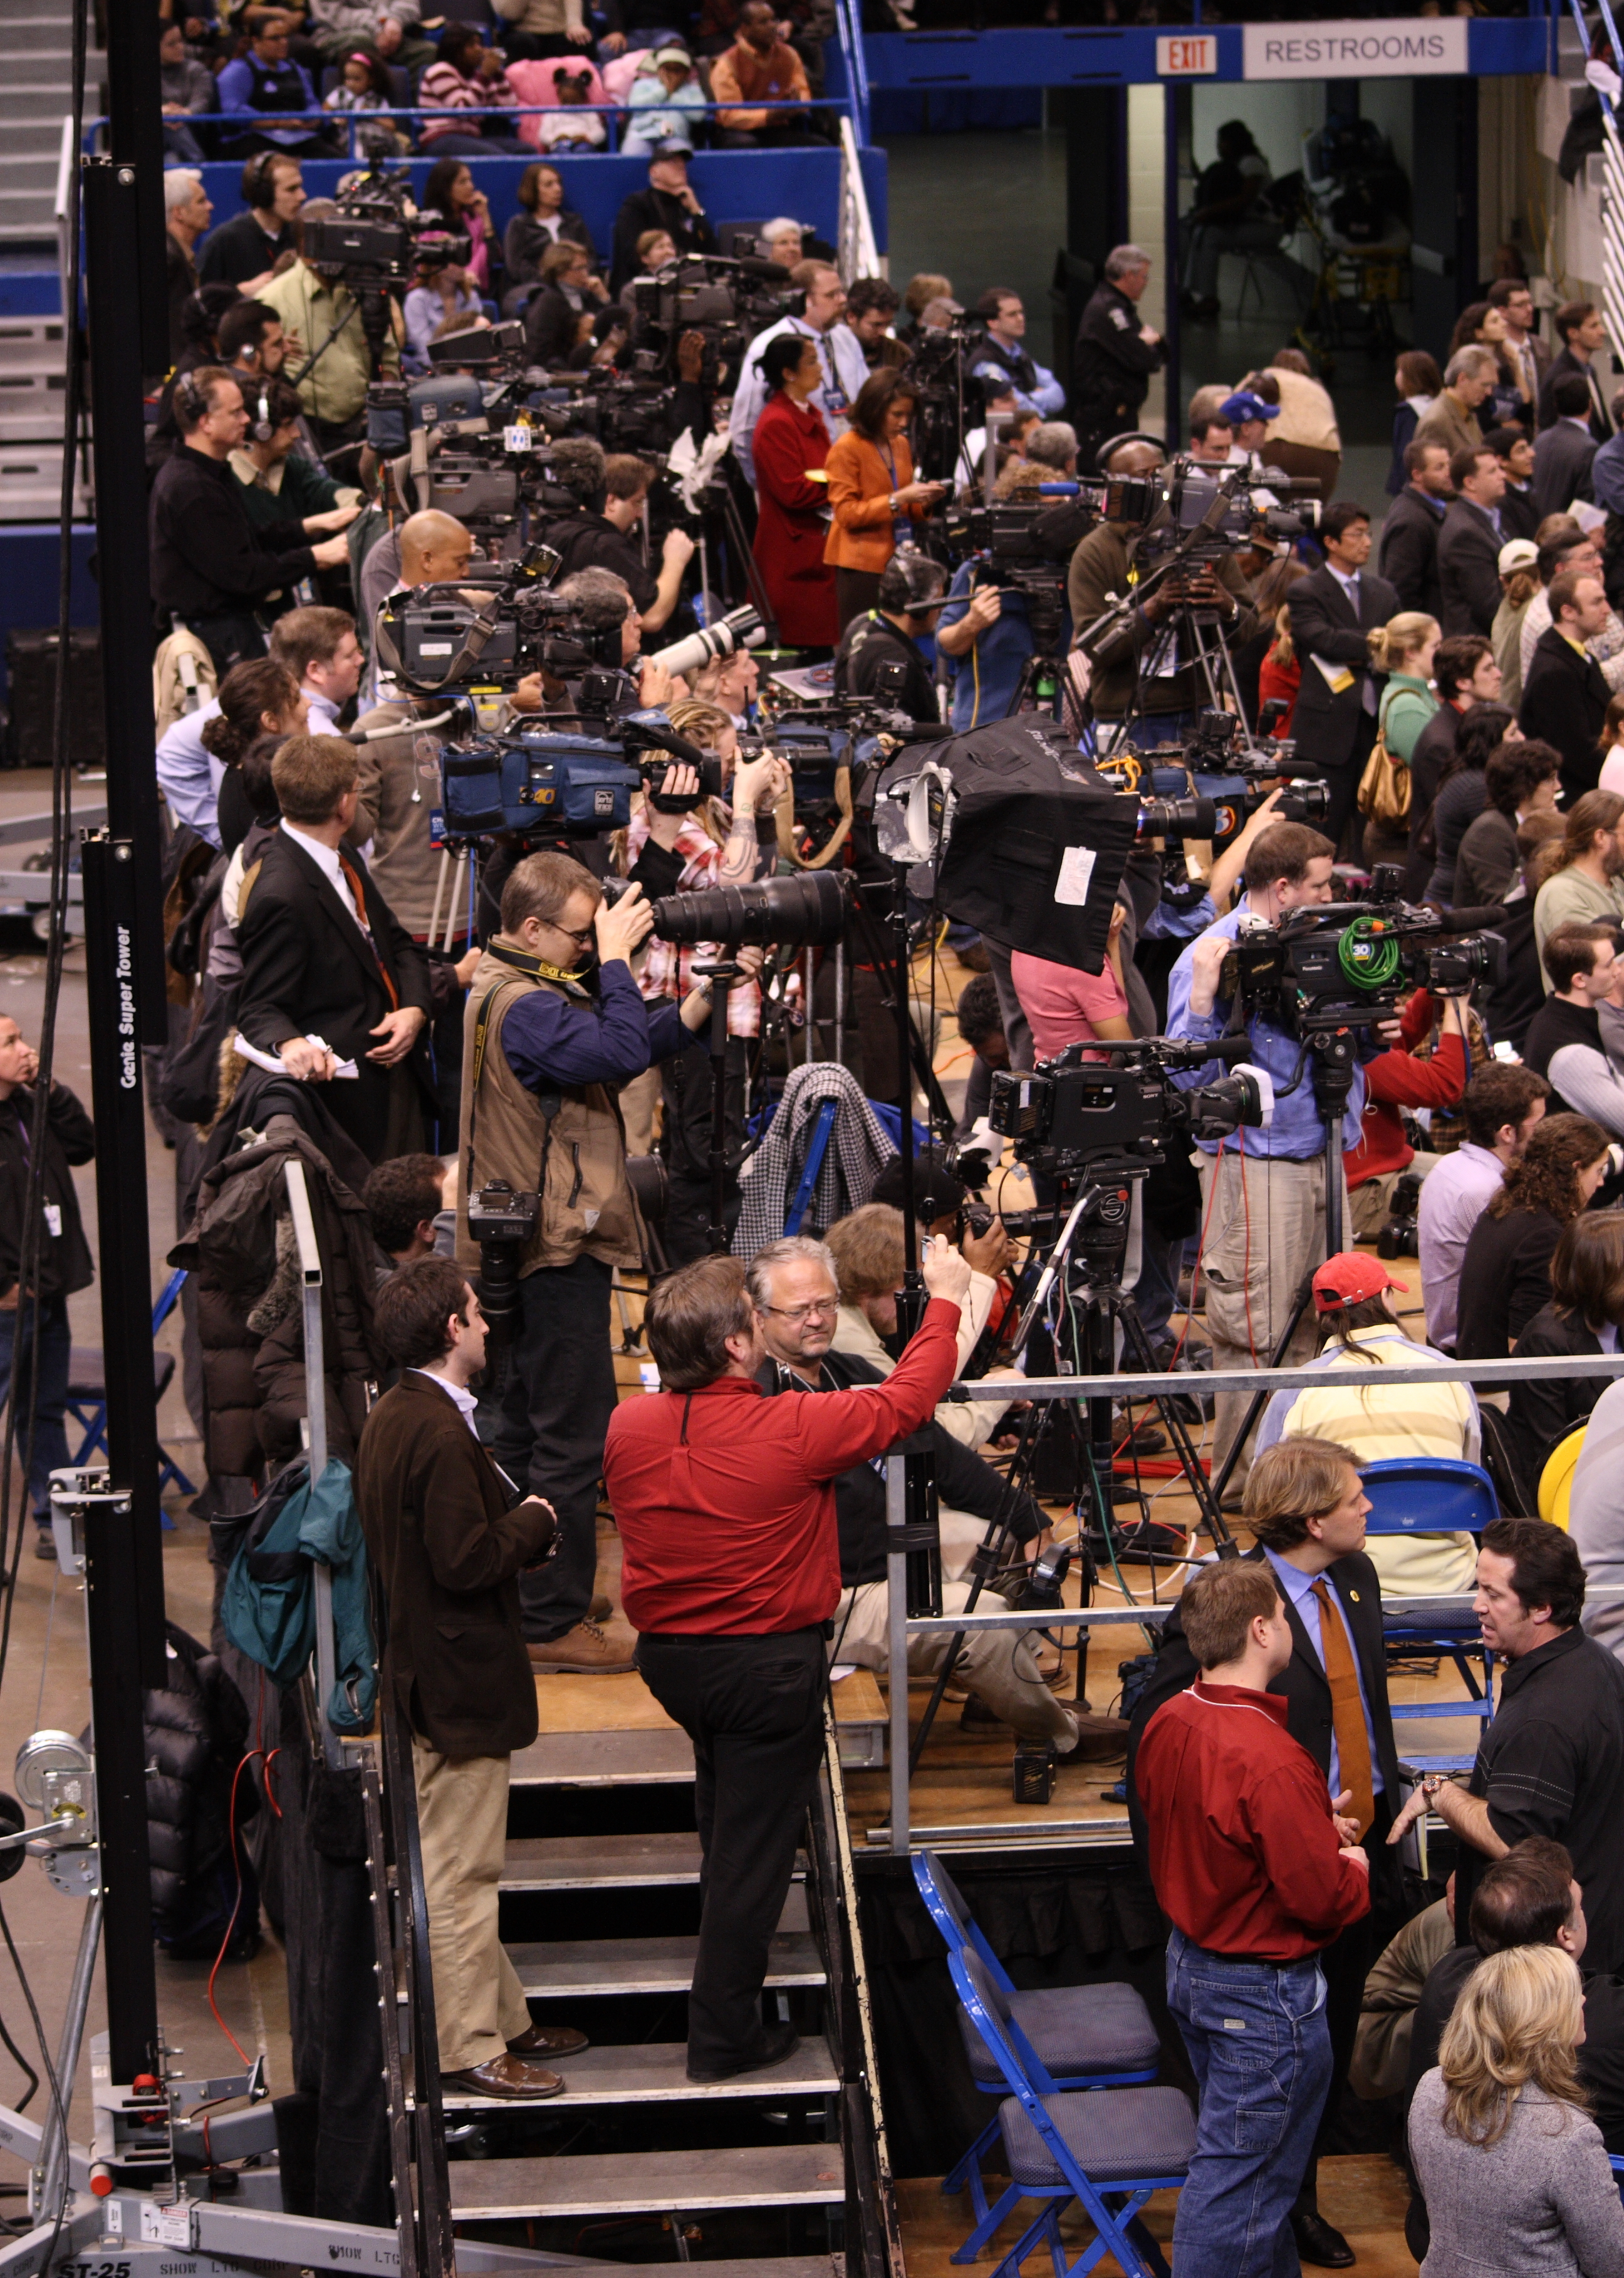 """""""Press photographers and film crews at Barack Obama rally, February 4, 2008"""" by Ragesoss - Own work. Licensed under GFDL via Commons - https://commons.wikimedia.org/wiki/File:Press_photographers_and_film_crews_at_Barack_Obama_rally,_February_4,_2008.jpg#/media/File:Press_photographers_and_film_crews_at_Barack_Obama_rally,_February_4,_2008.jpg"""